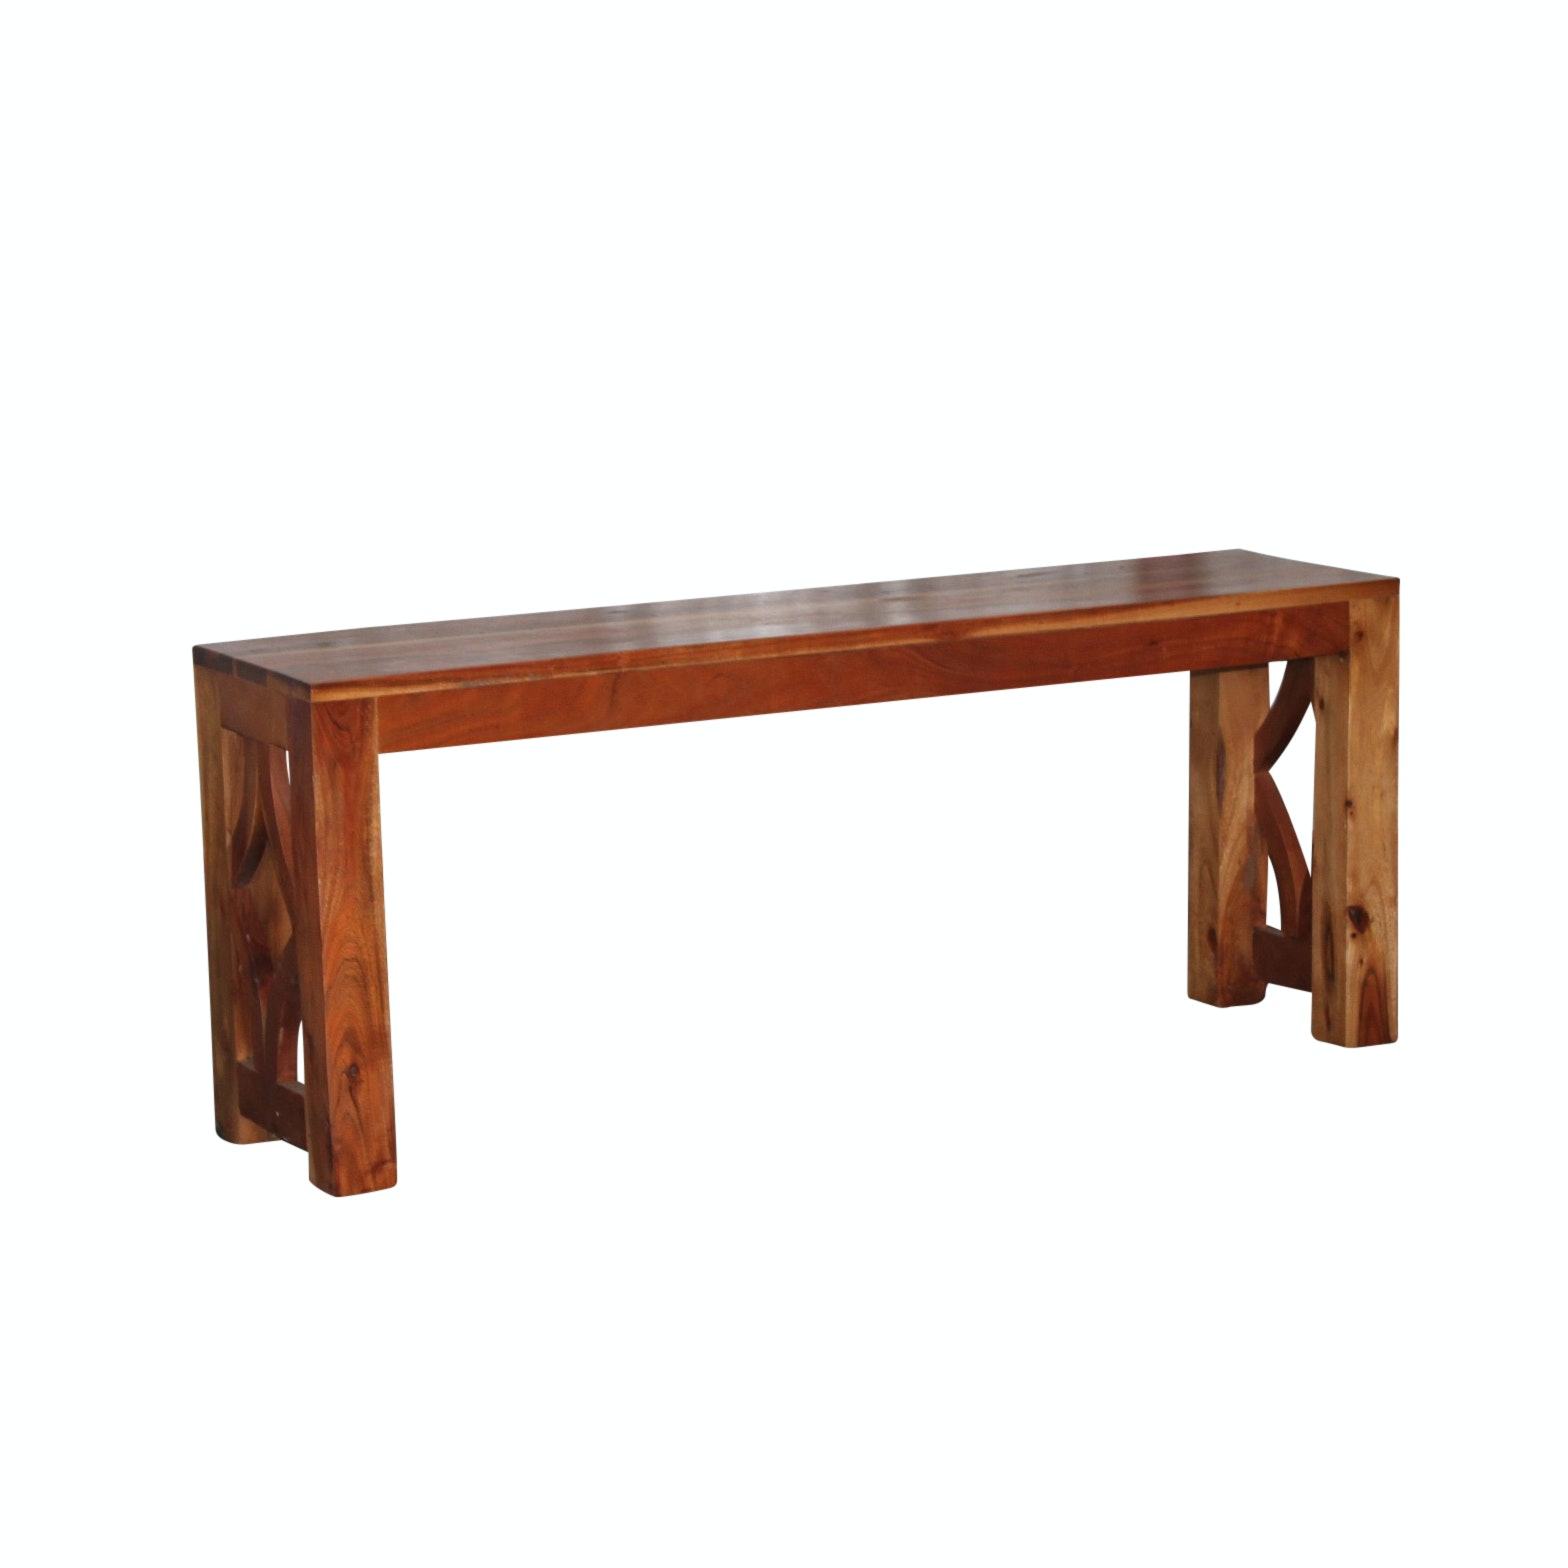 Exotic Hardwood Bench